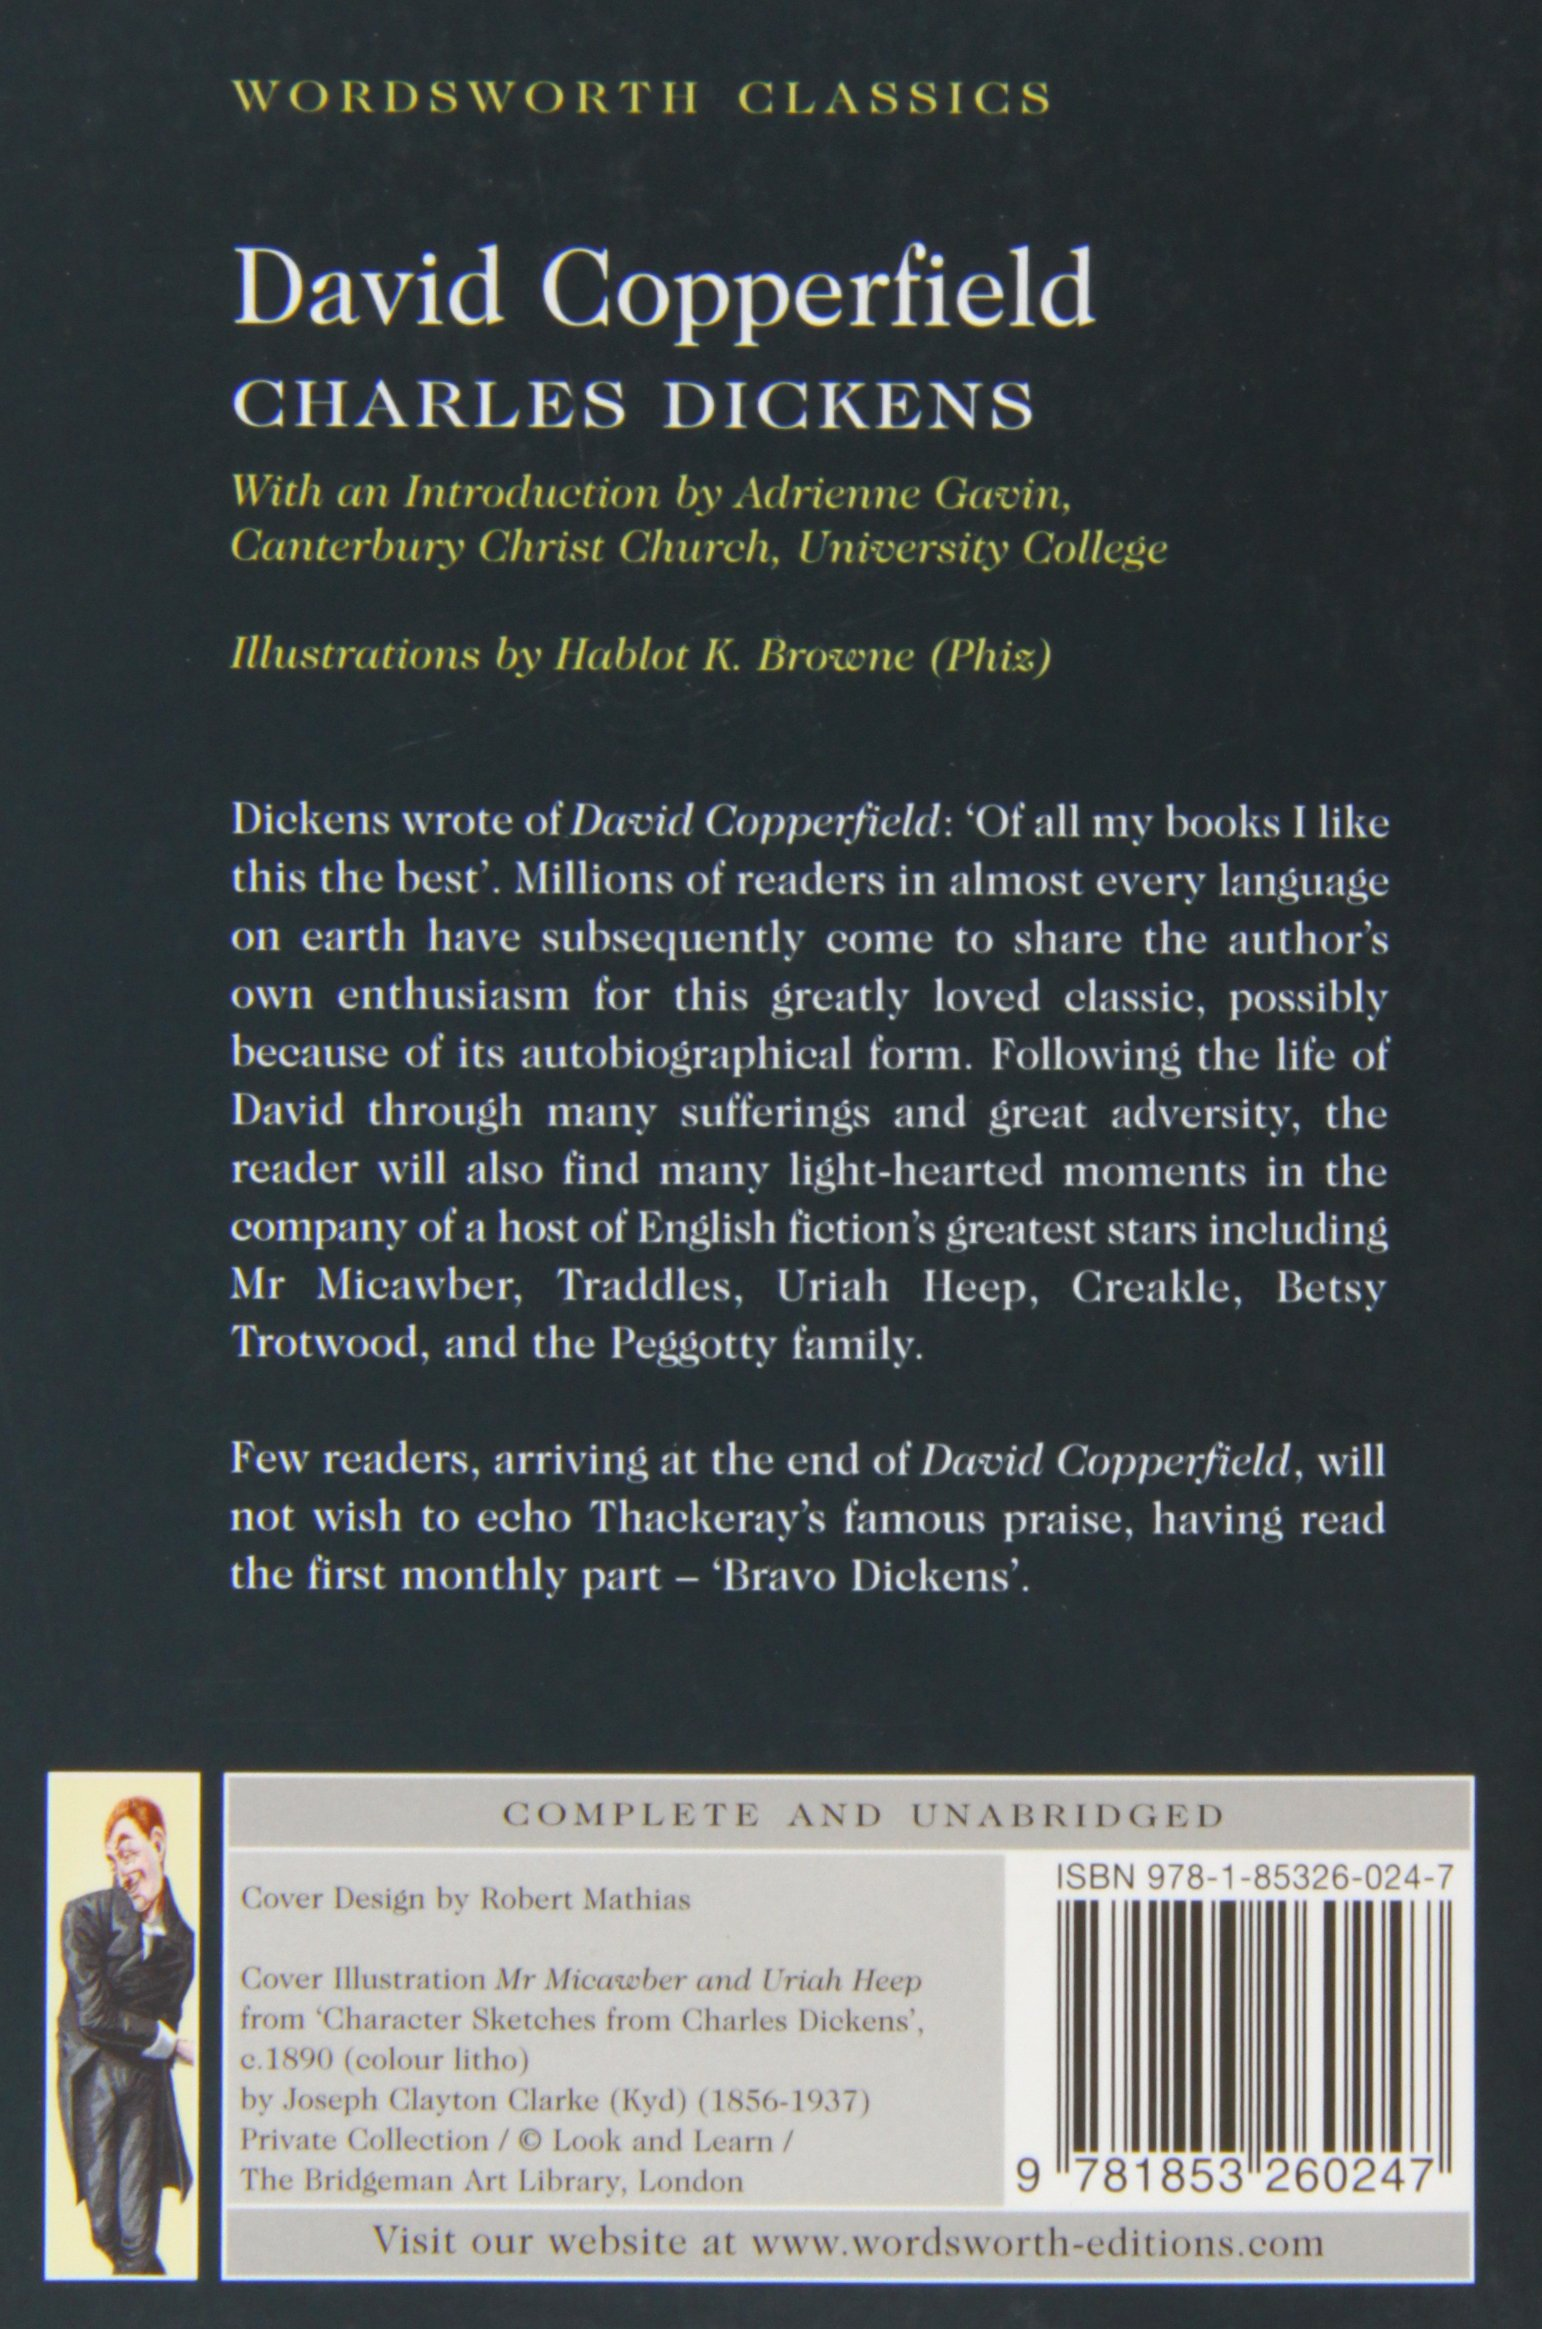 david copperfield wordsworth classics charles dickens david copperfield wordsworth classics charles dickens 9781853260247 amazon com books